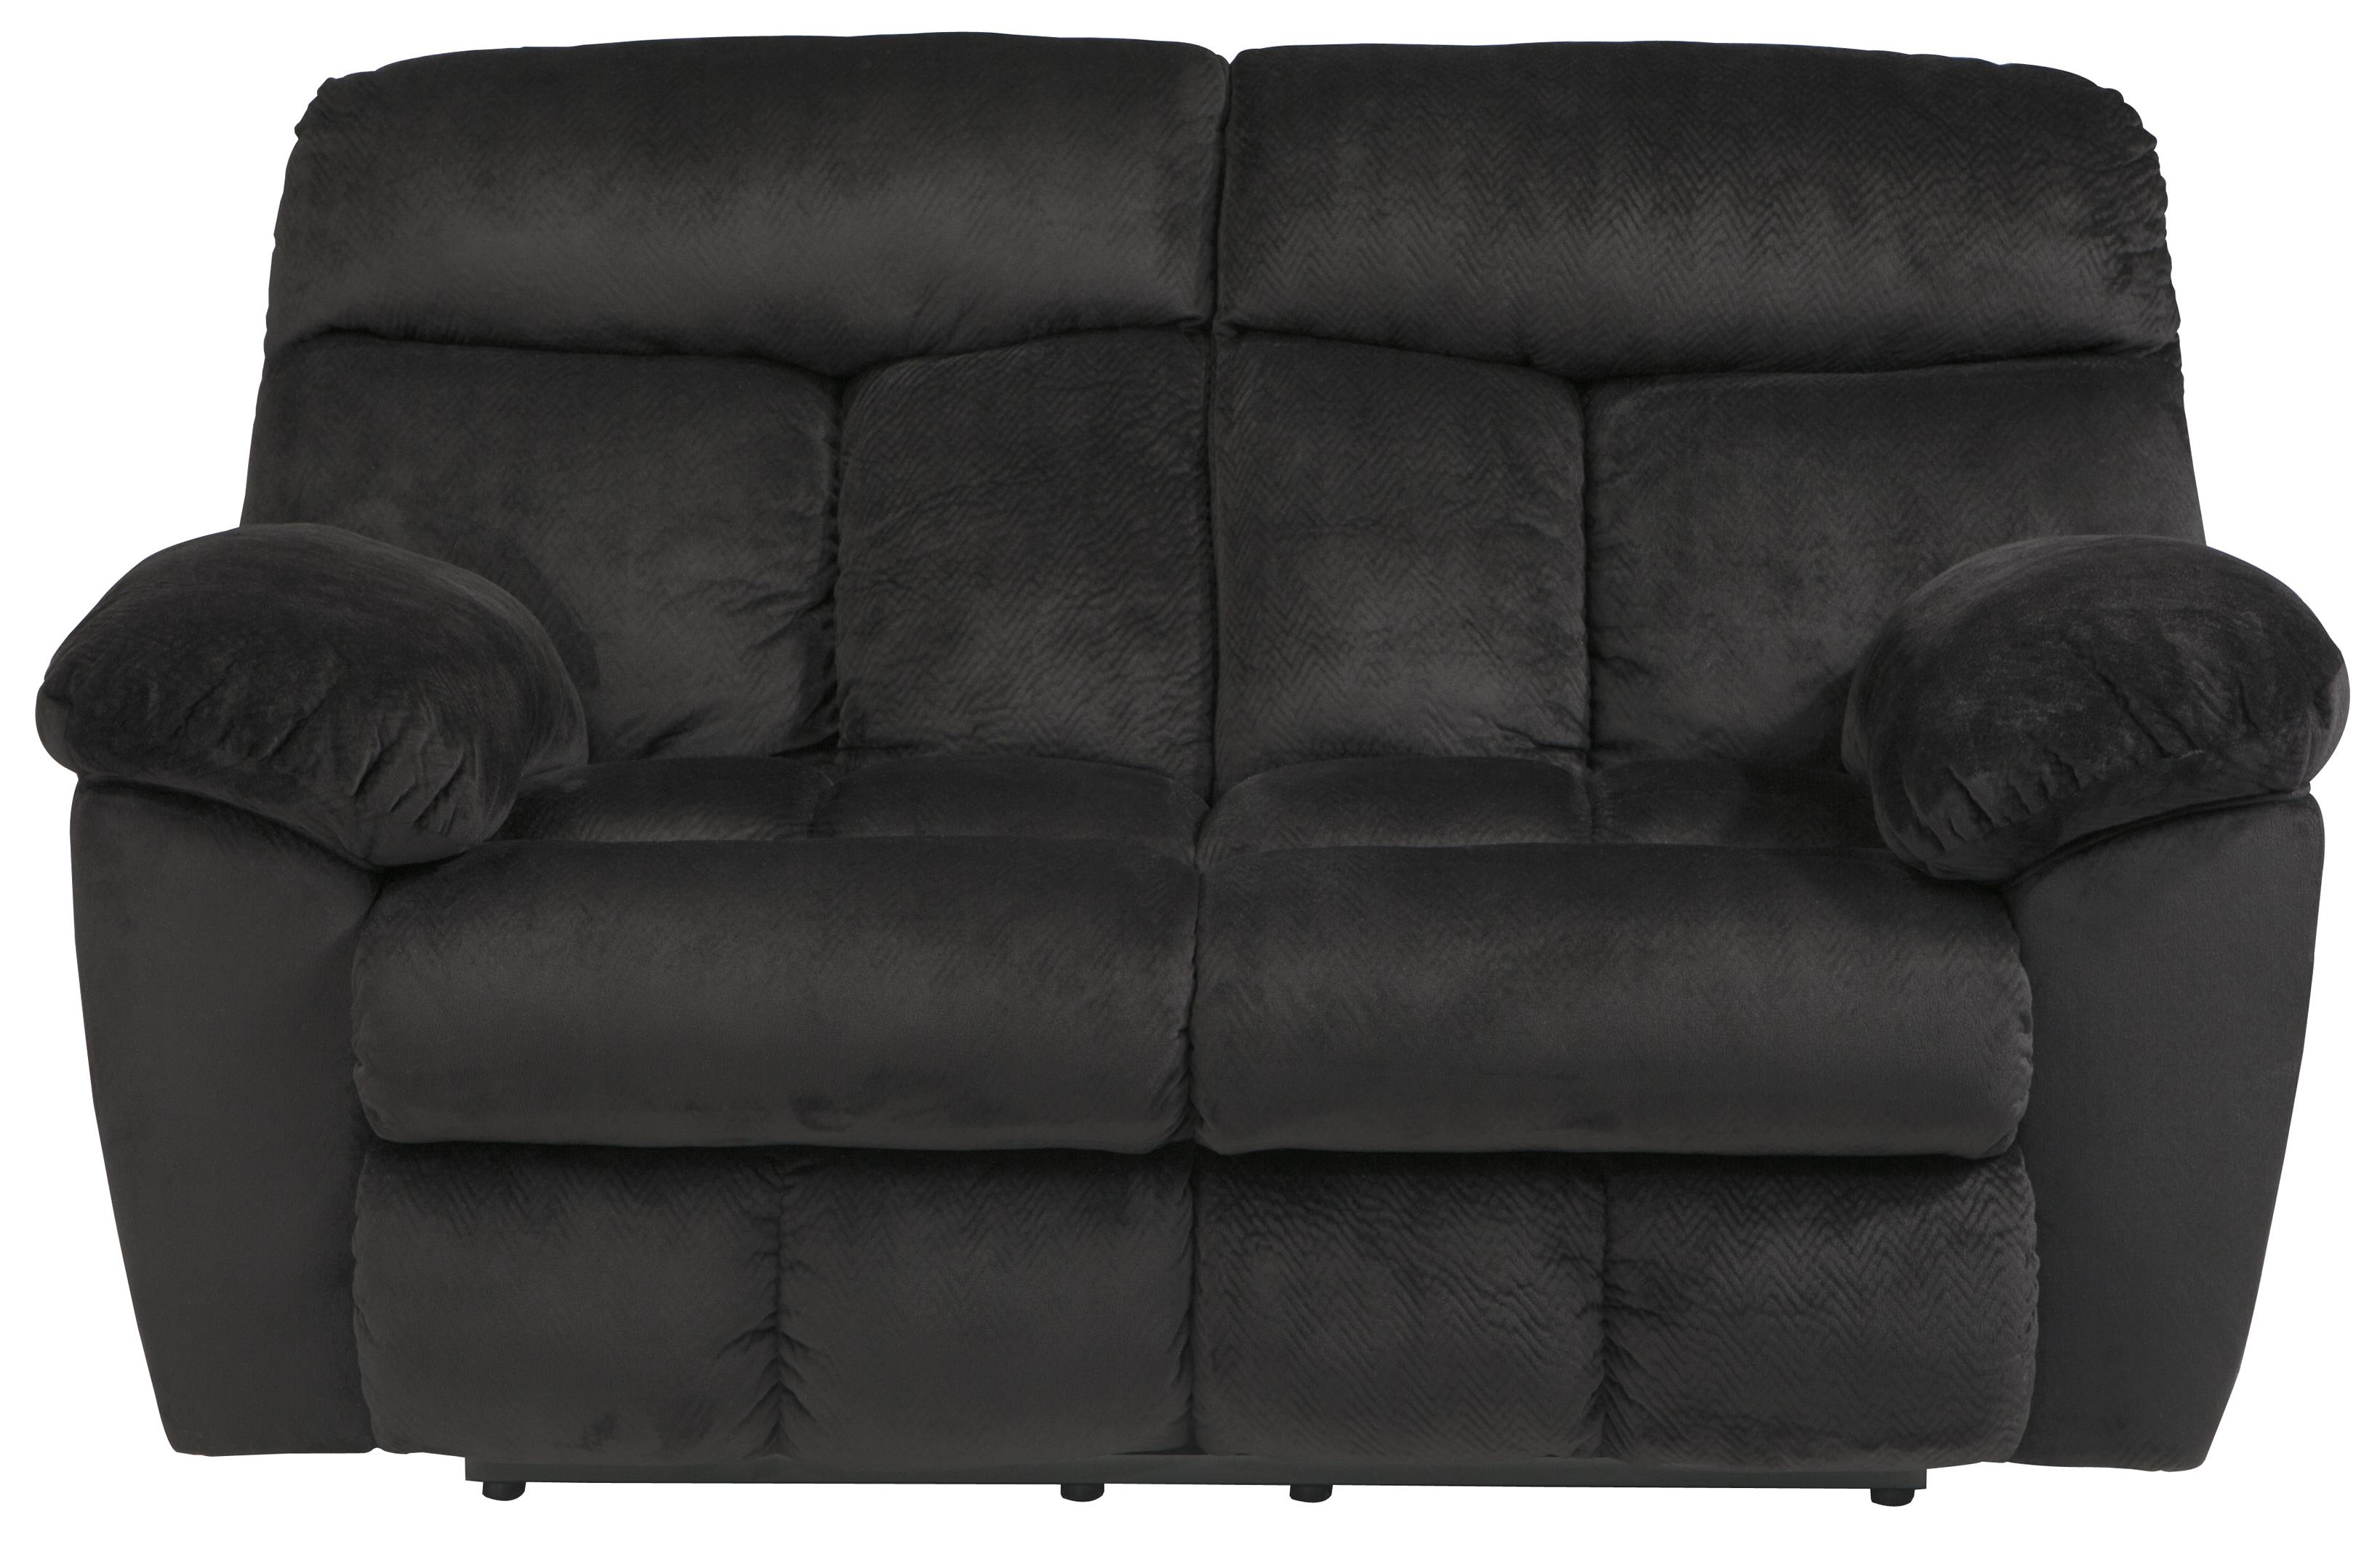 Signature Design by Ashley Saul Reclining Loveseat - Item Number: 2230186